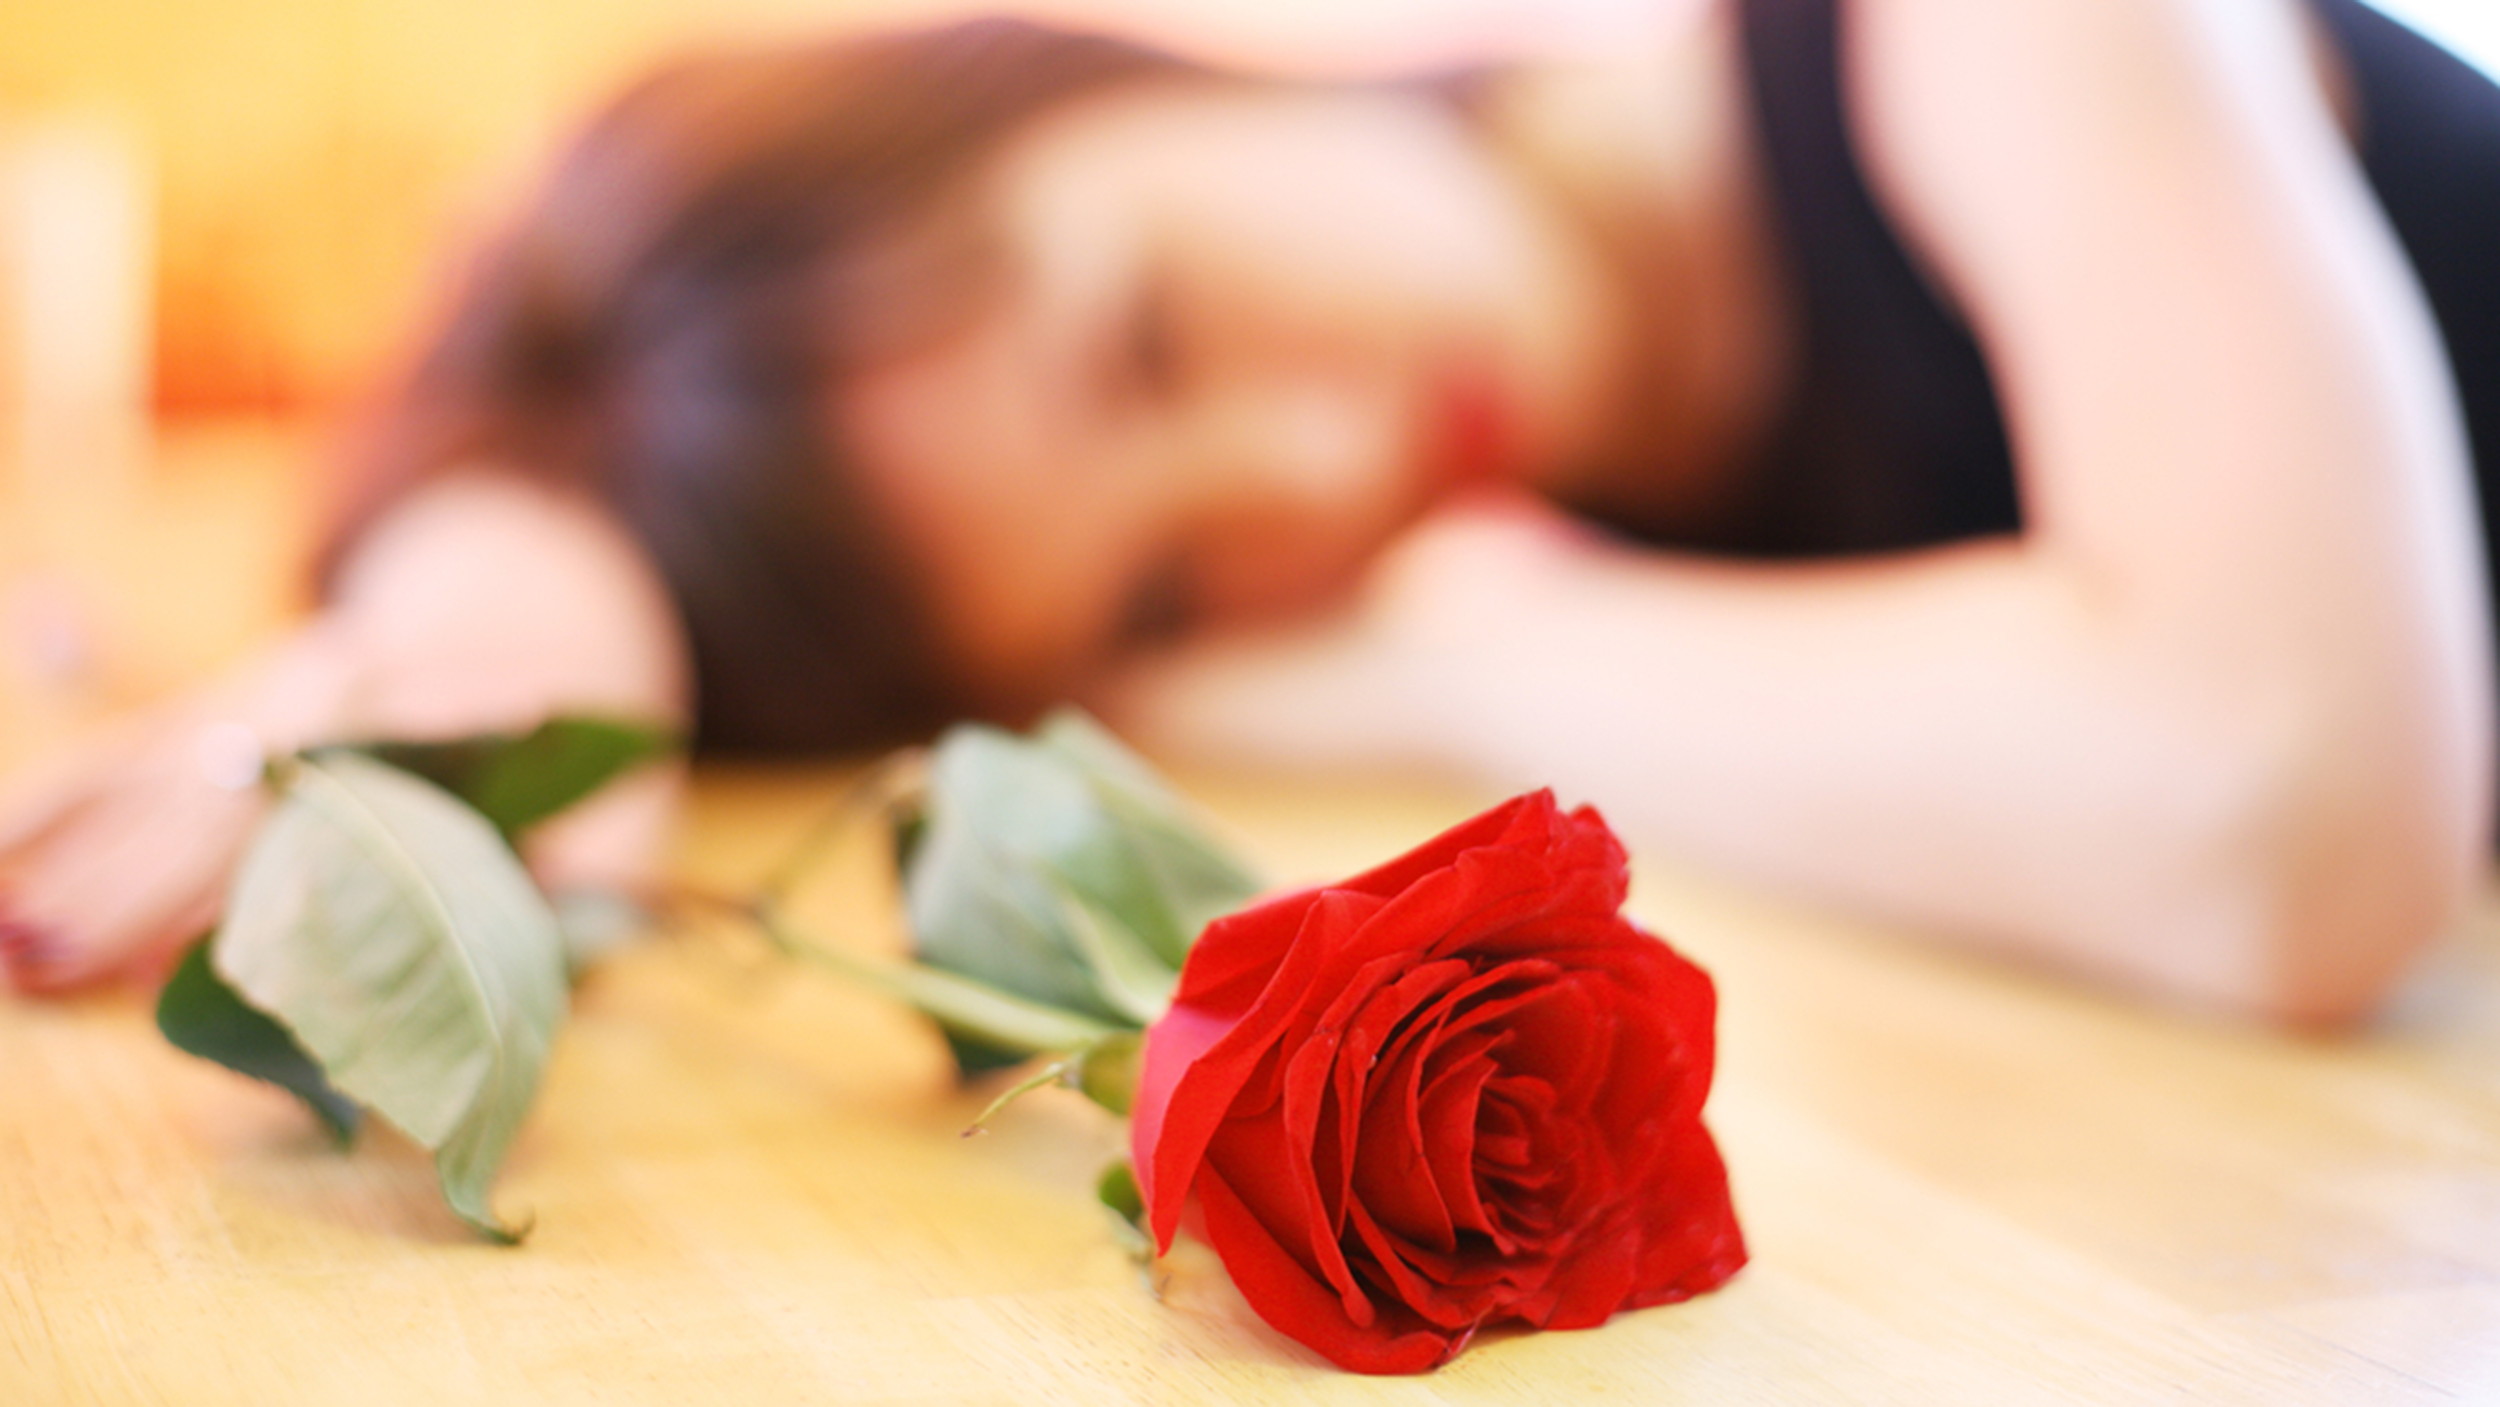 Sad Girl With Red Rose Wallpaper Yes Broken Hearts Are Real But They Re Not What You